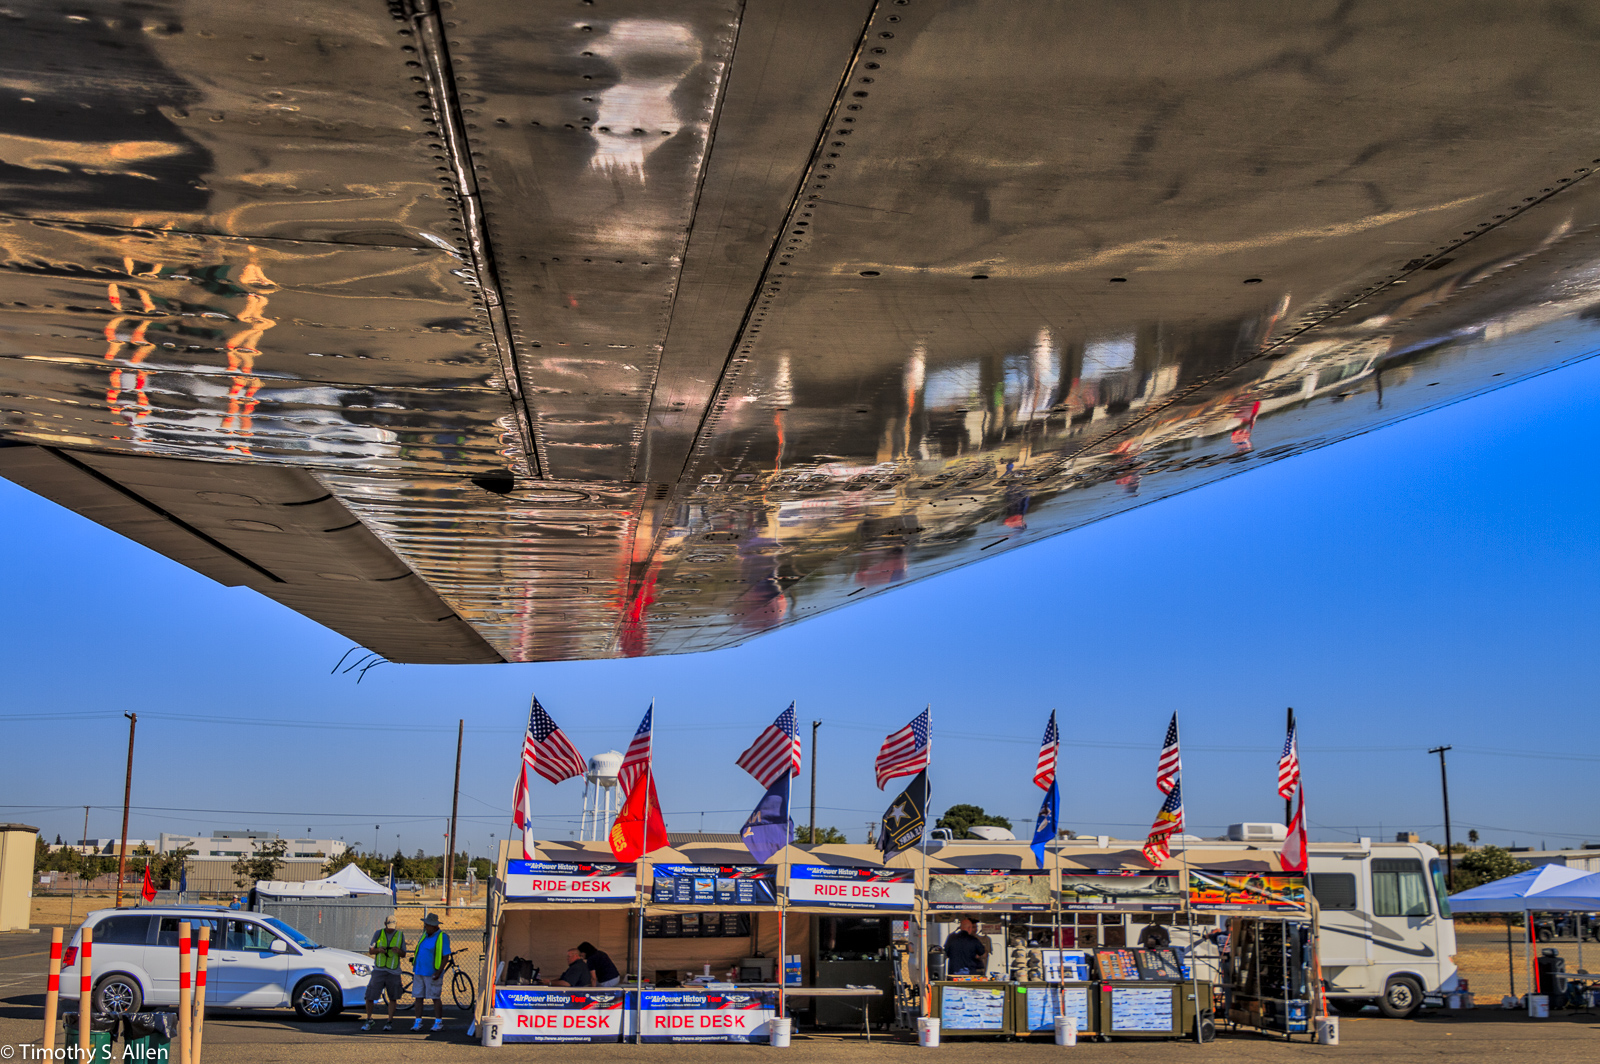 The premiere bomber of World War II, FIFI is one of the last flying B-29 in existence. Mather Field, Sacramento, CA, U.S.A. September 28, 2016